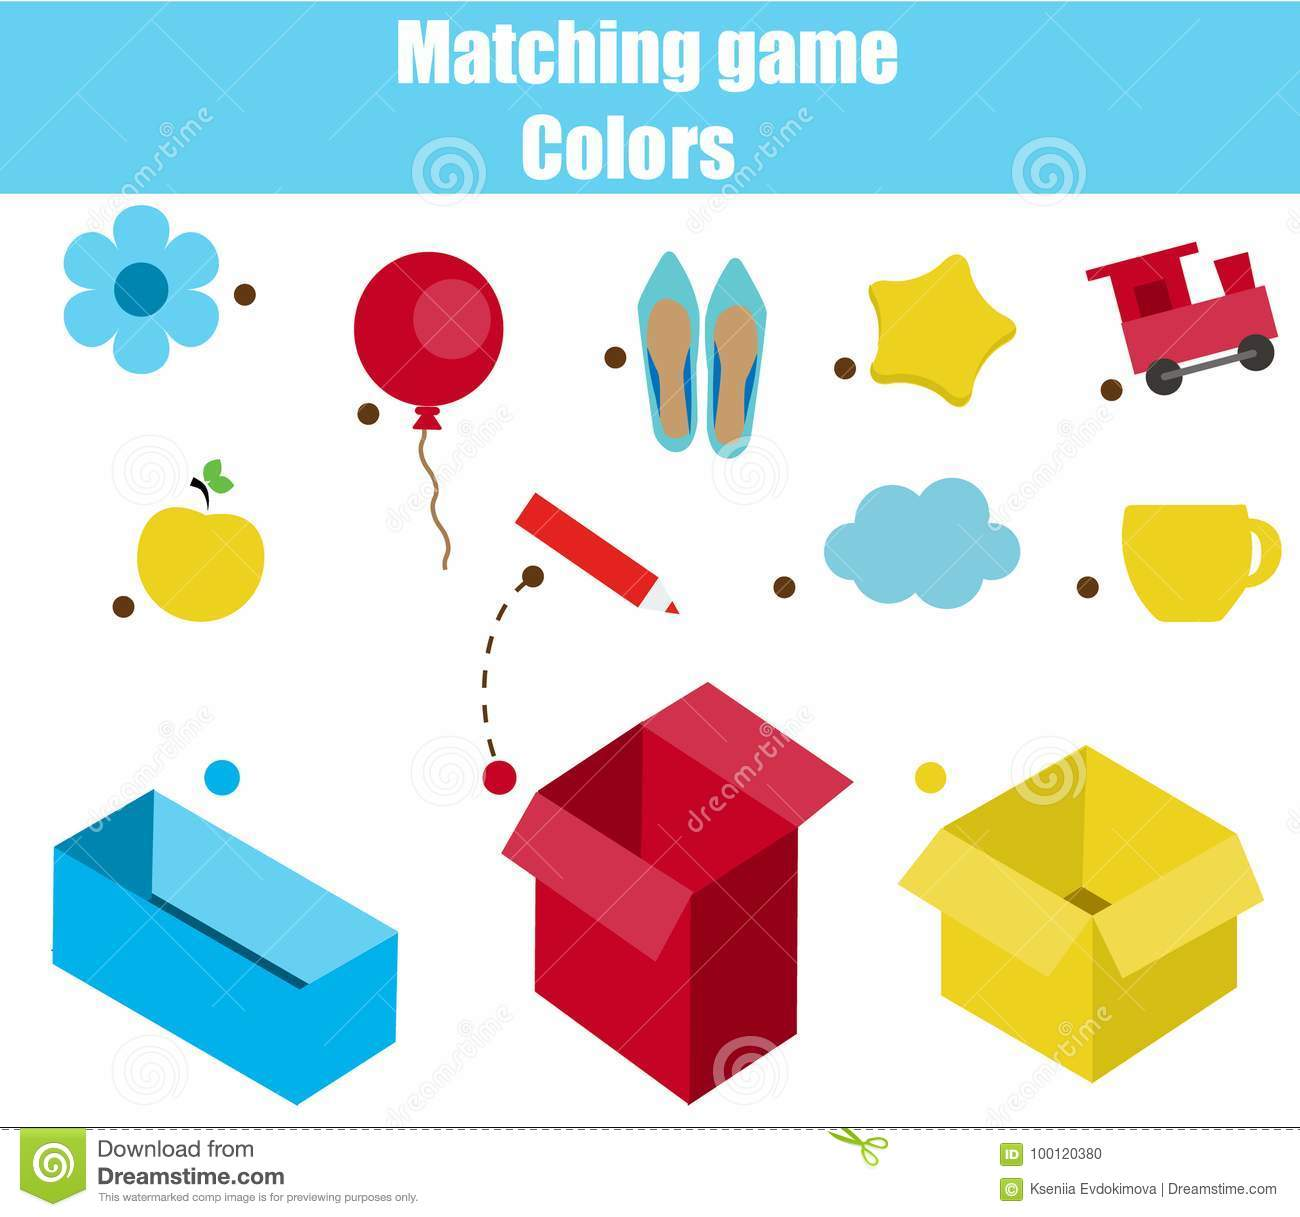 Educational Children Game Matching Game Worksheet For Kids Match By Color Sorting Objects For Toddlers Stock Vector Illustration Of Teacher Pupil 100120380